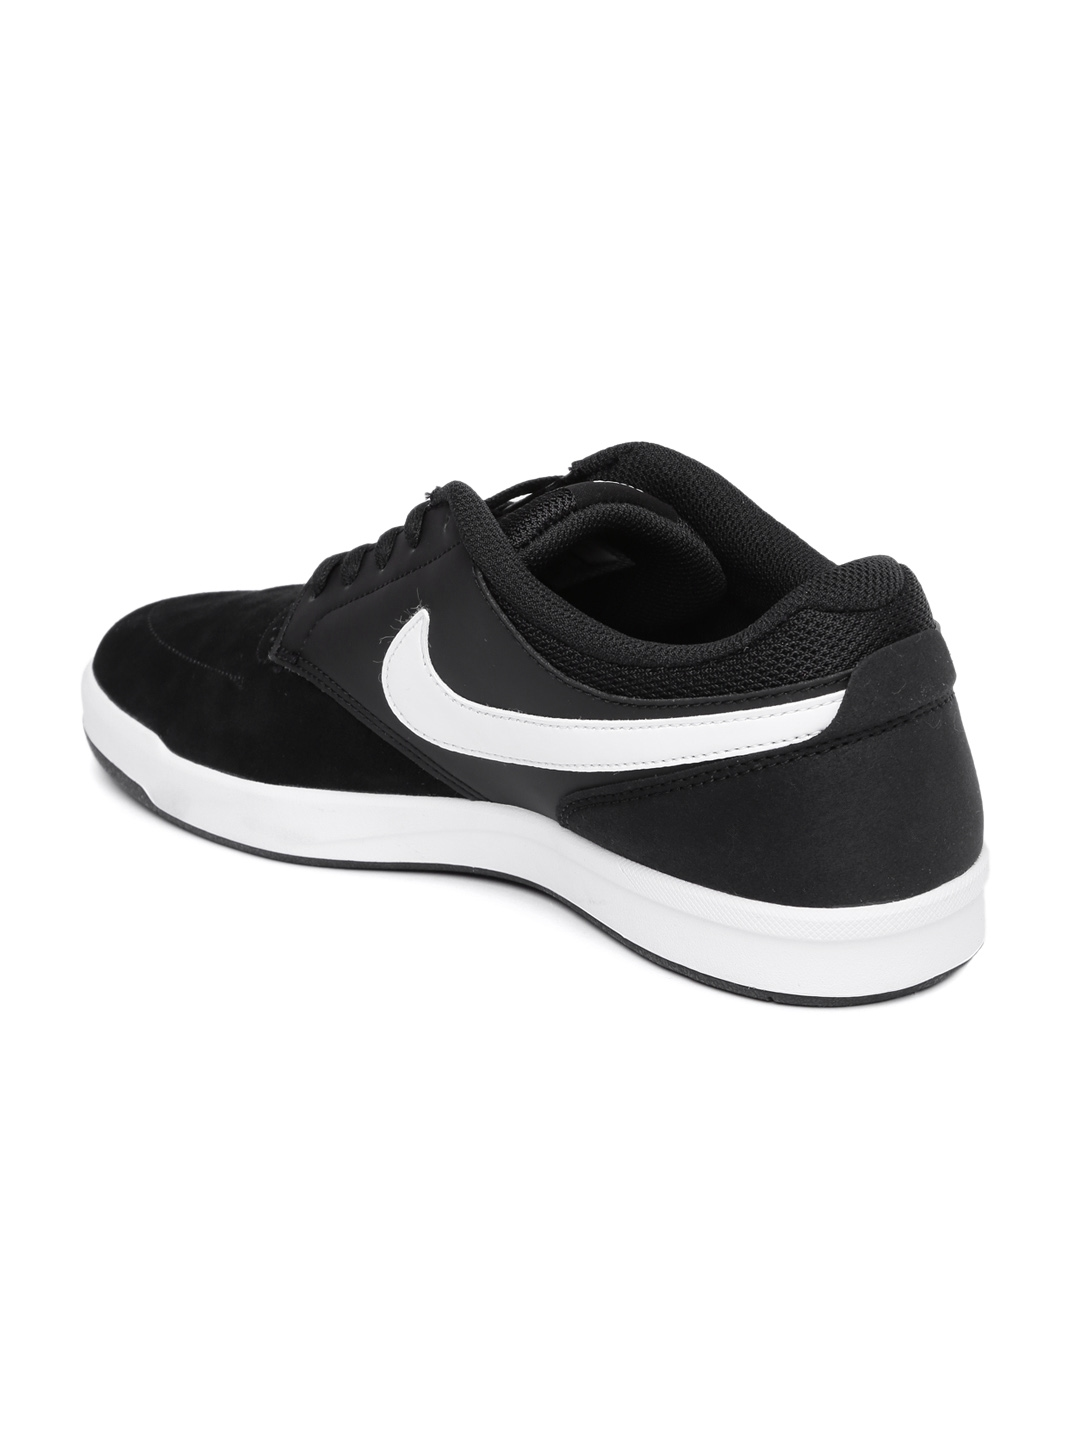 3047f03e810 Buy Nike Men Black SB FOKUS Suede Skateboarding Shoes - Casual Shoes ...